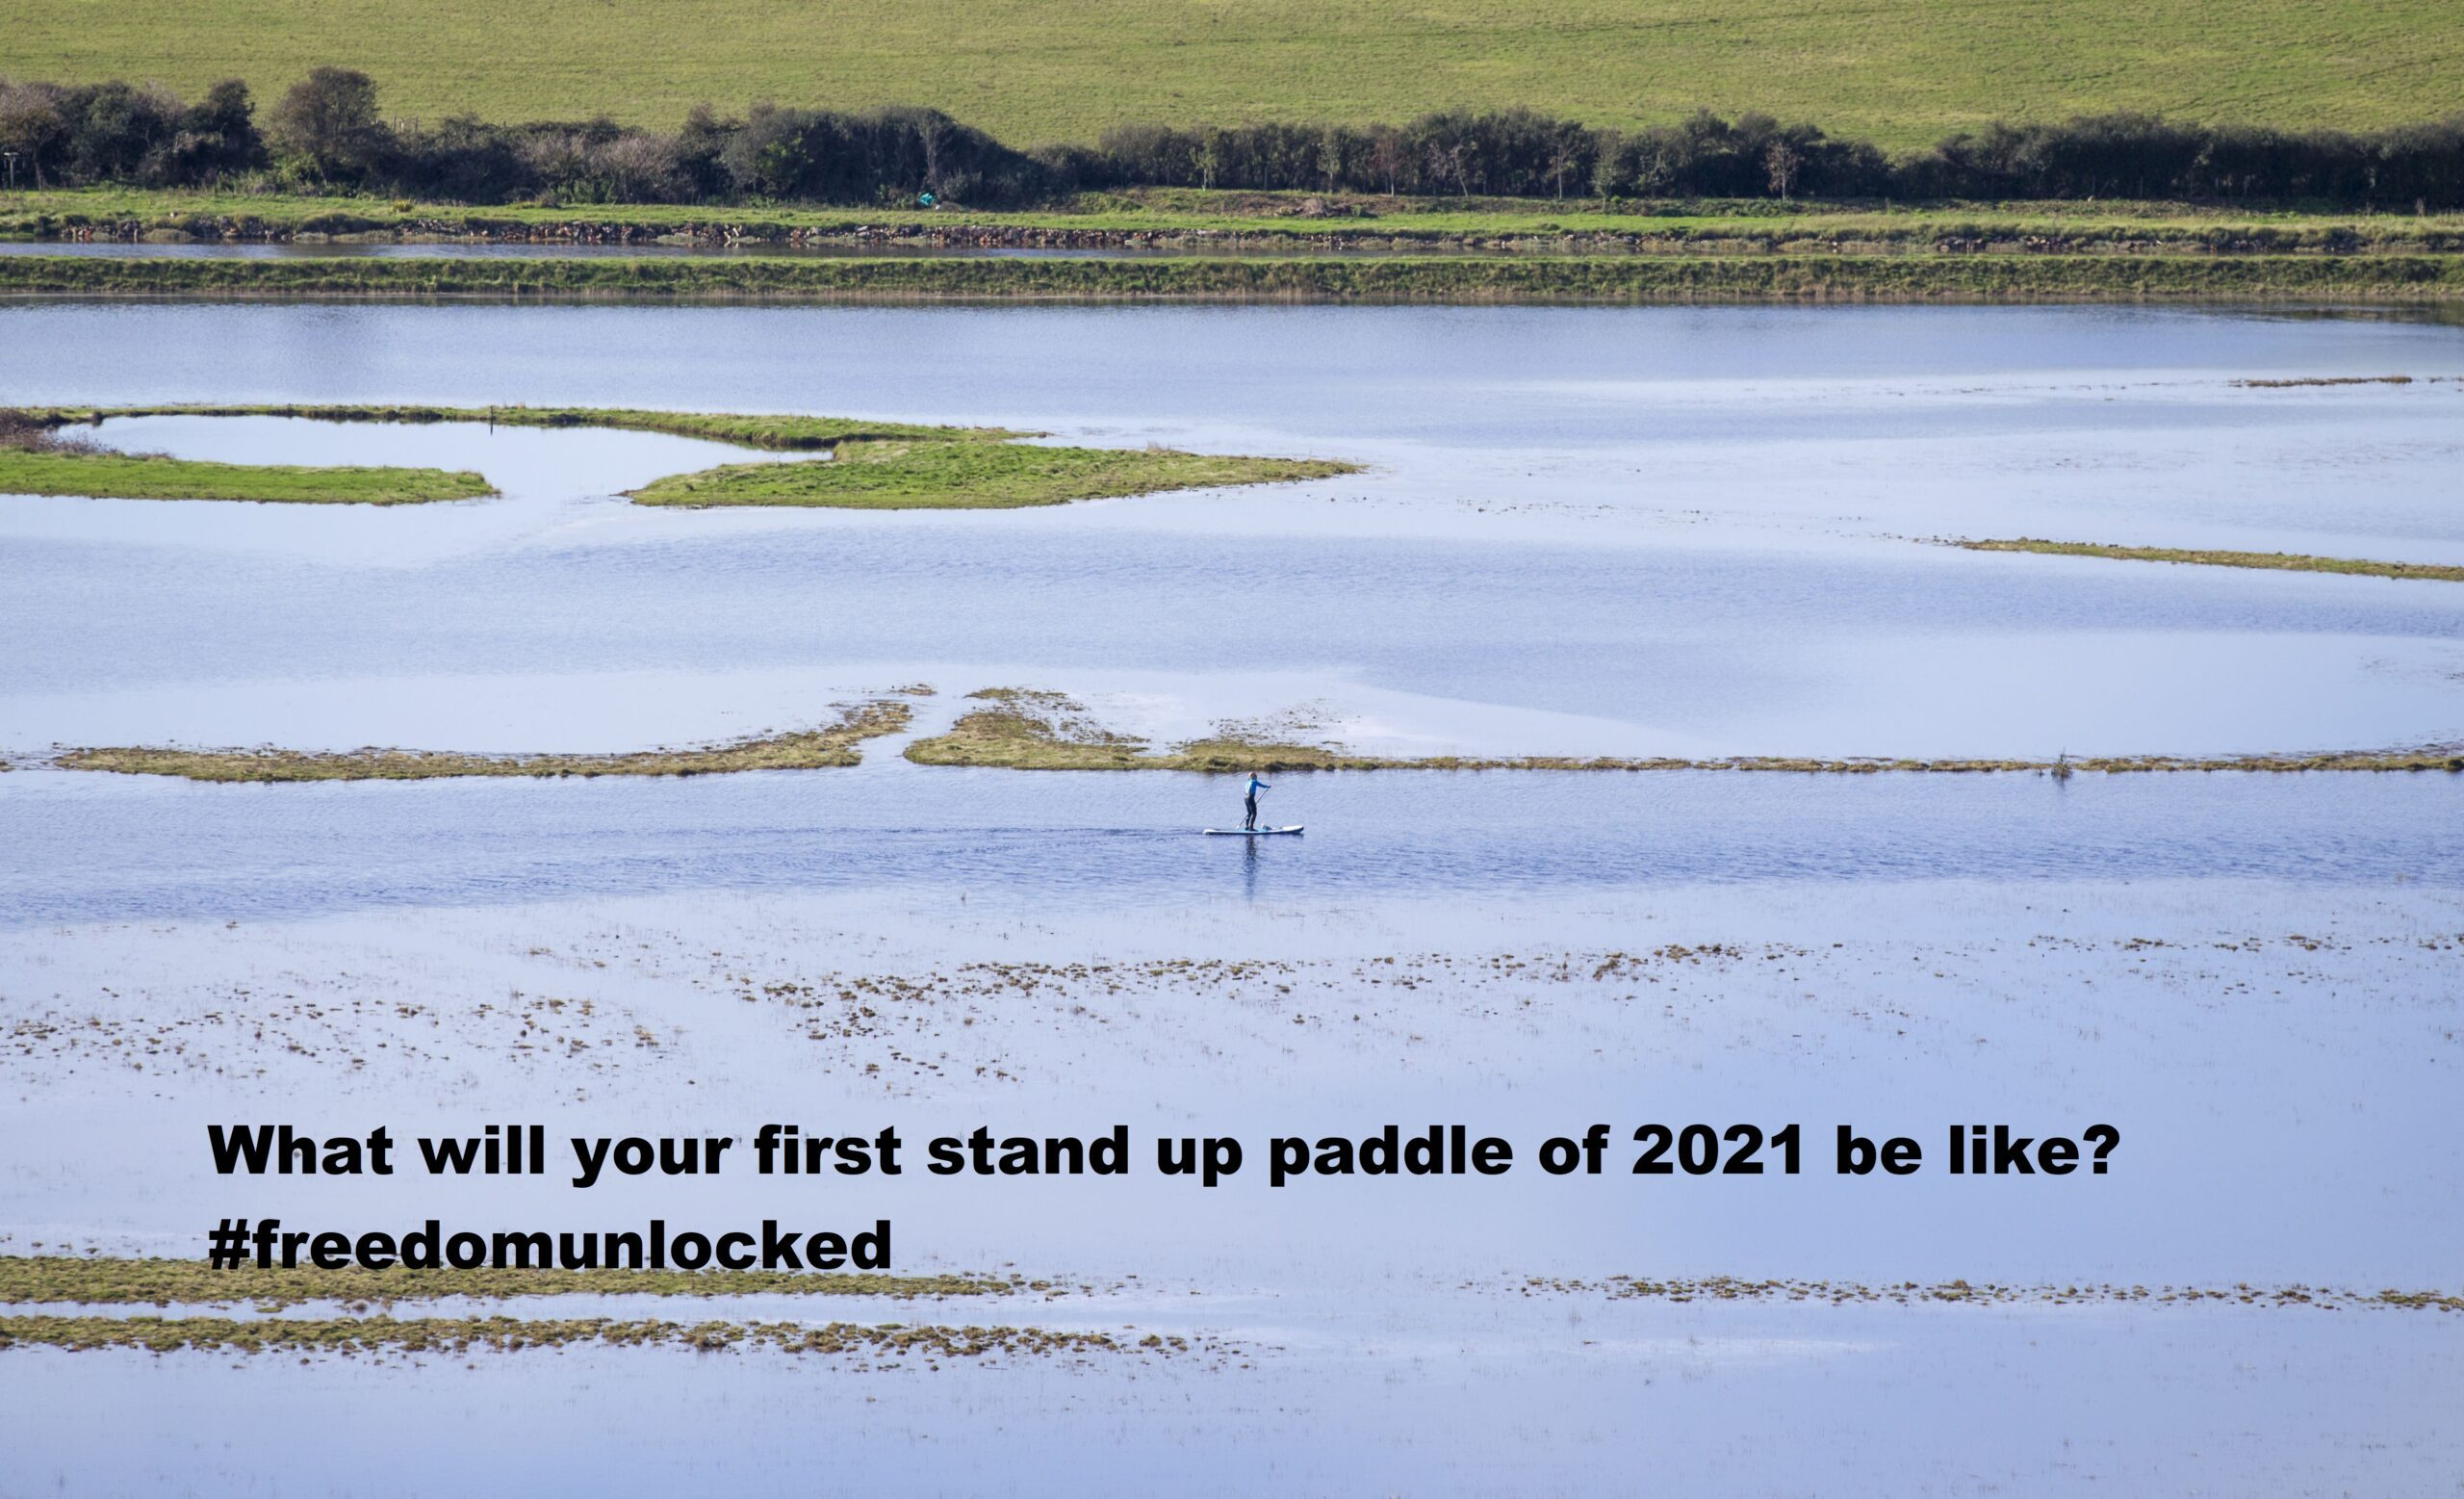 What will your first stand up paddle of 2021 be like? #freedomunlocked